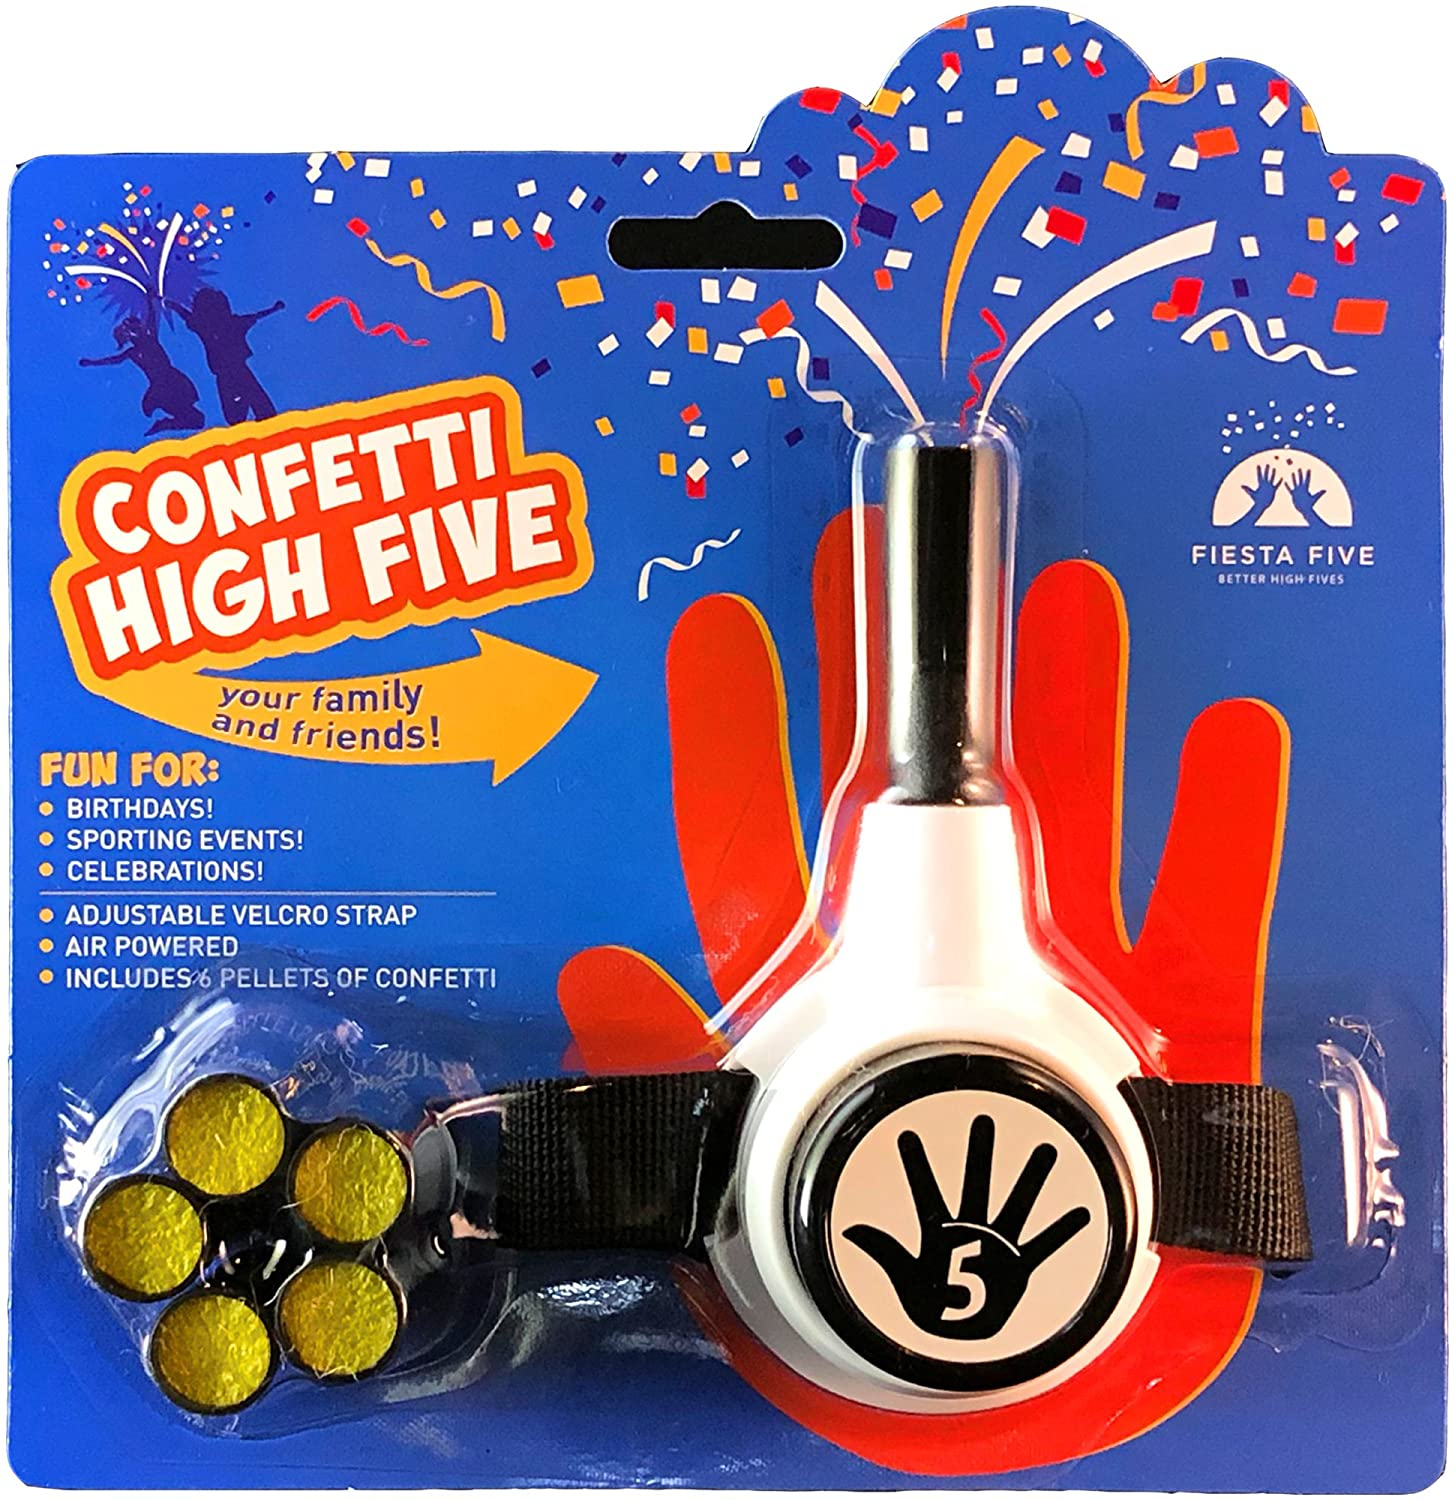 Confetti High Five HandHeld Toy Shooter